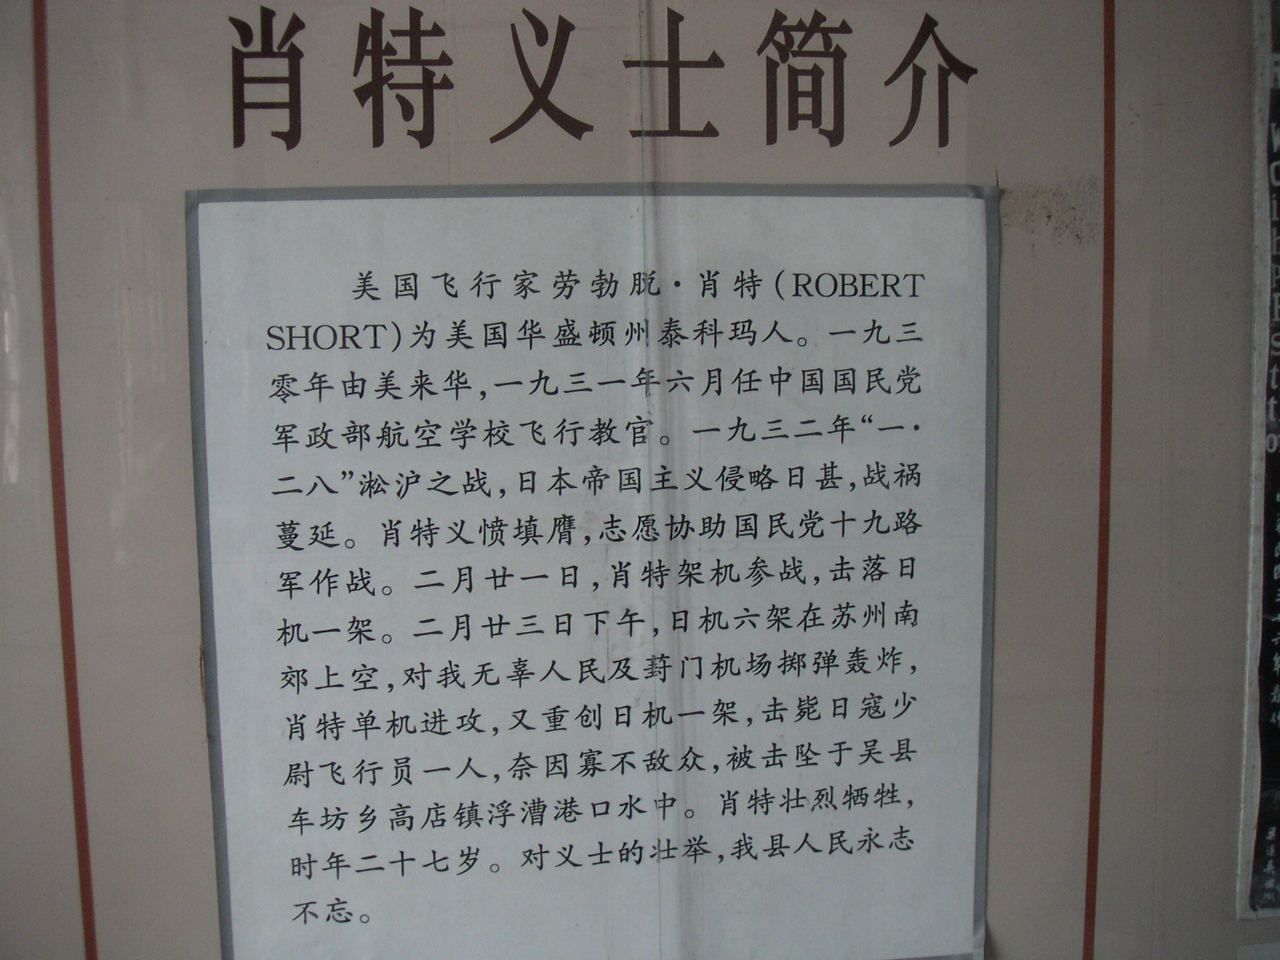 Chinese description